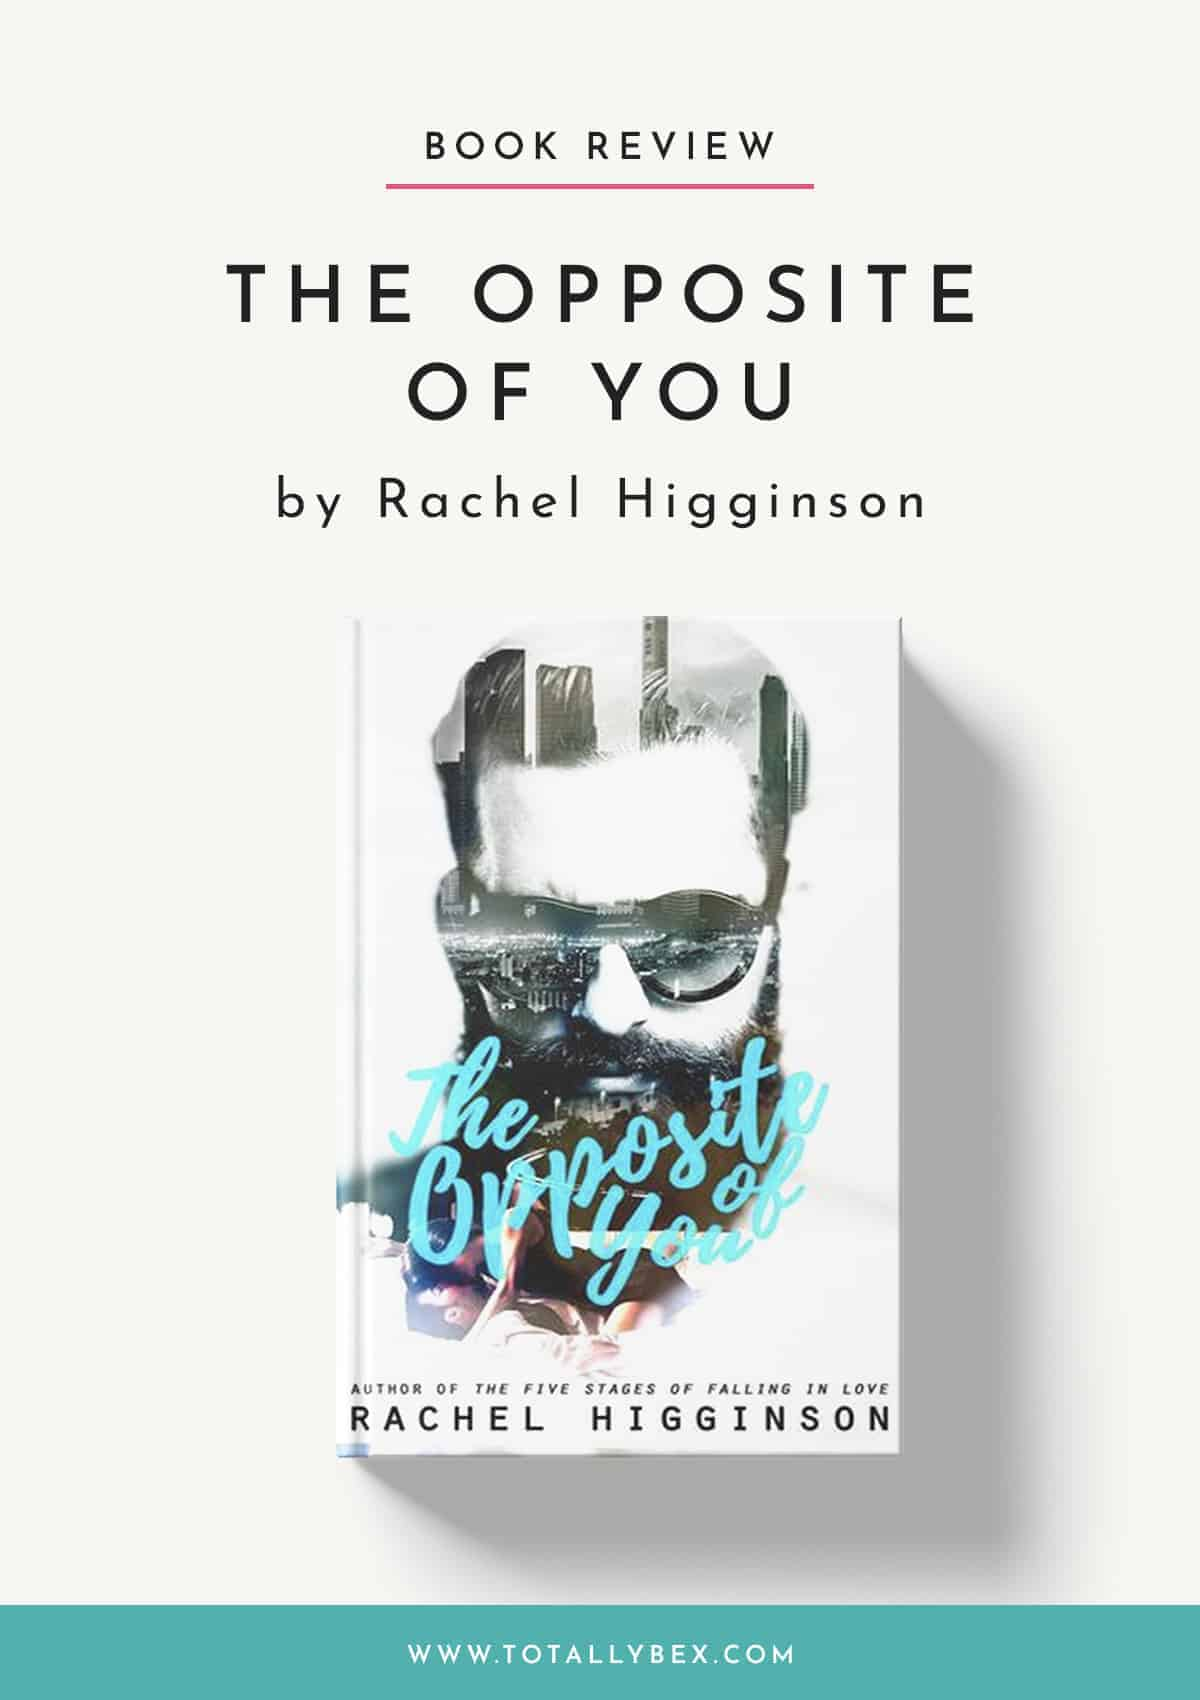 The Opposite of You by Rachel Higginson-Book Review